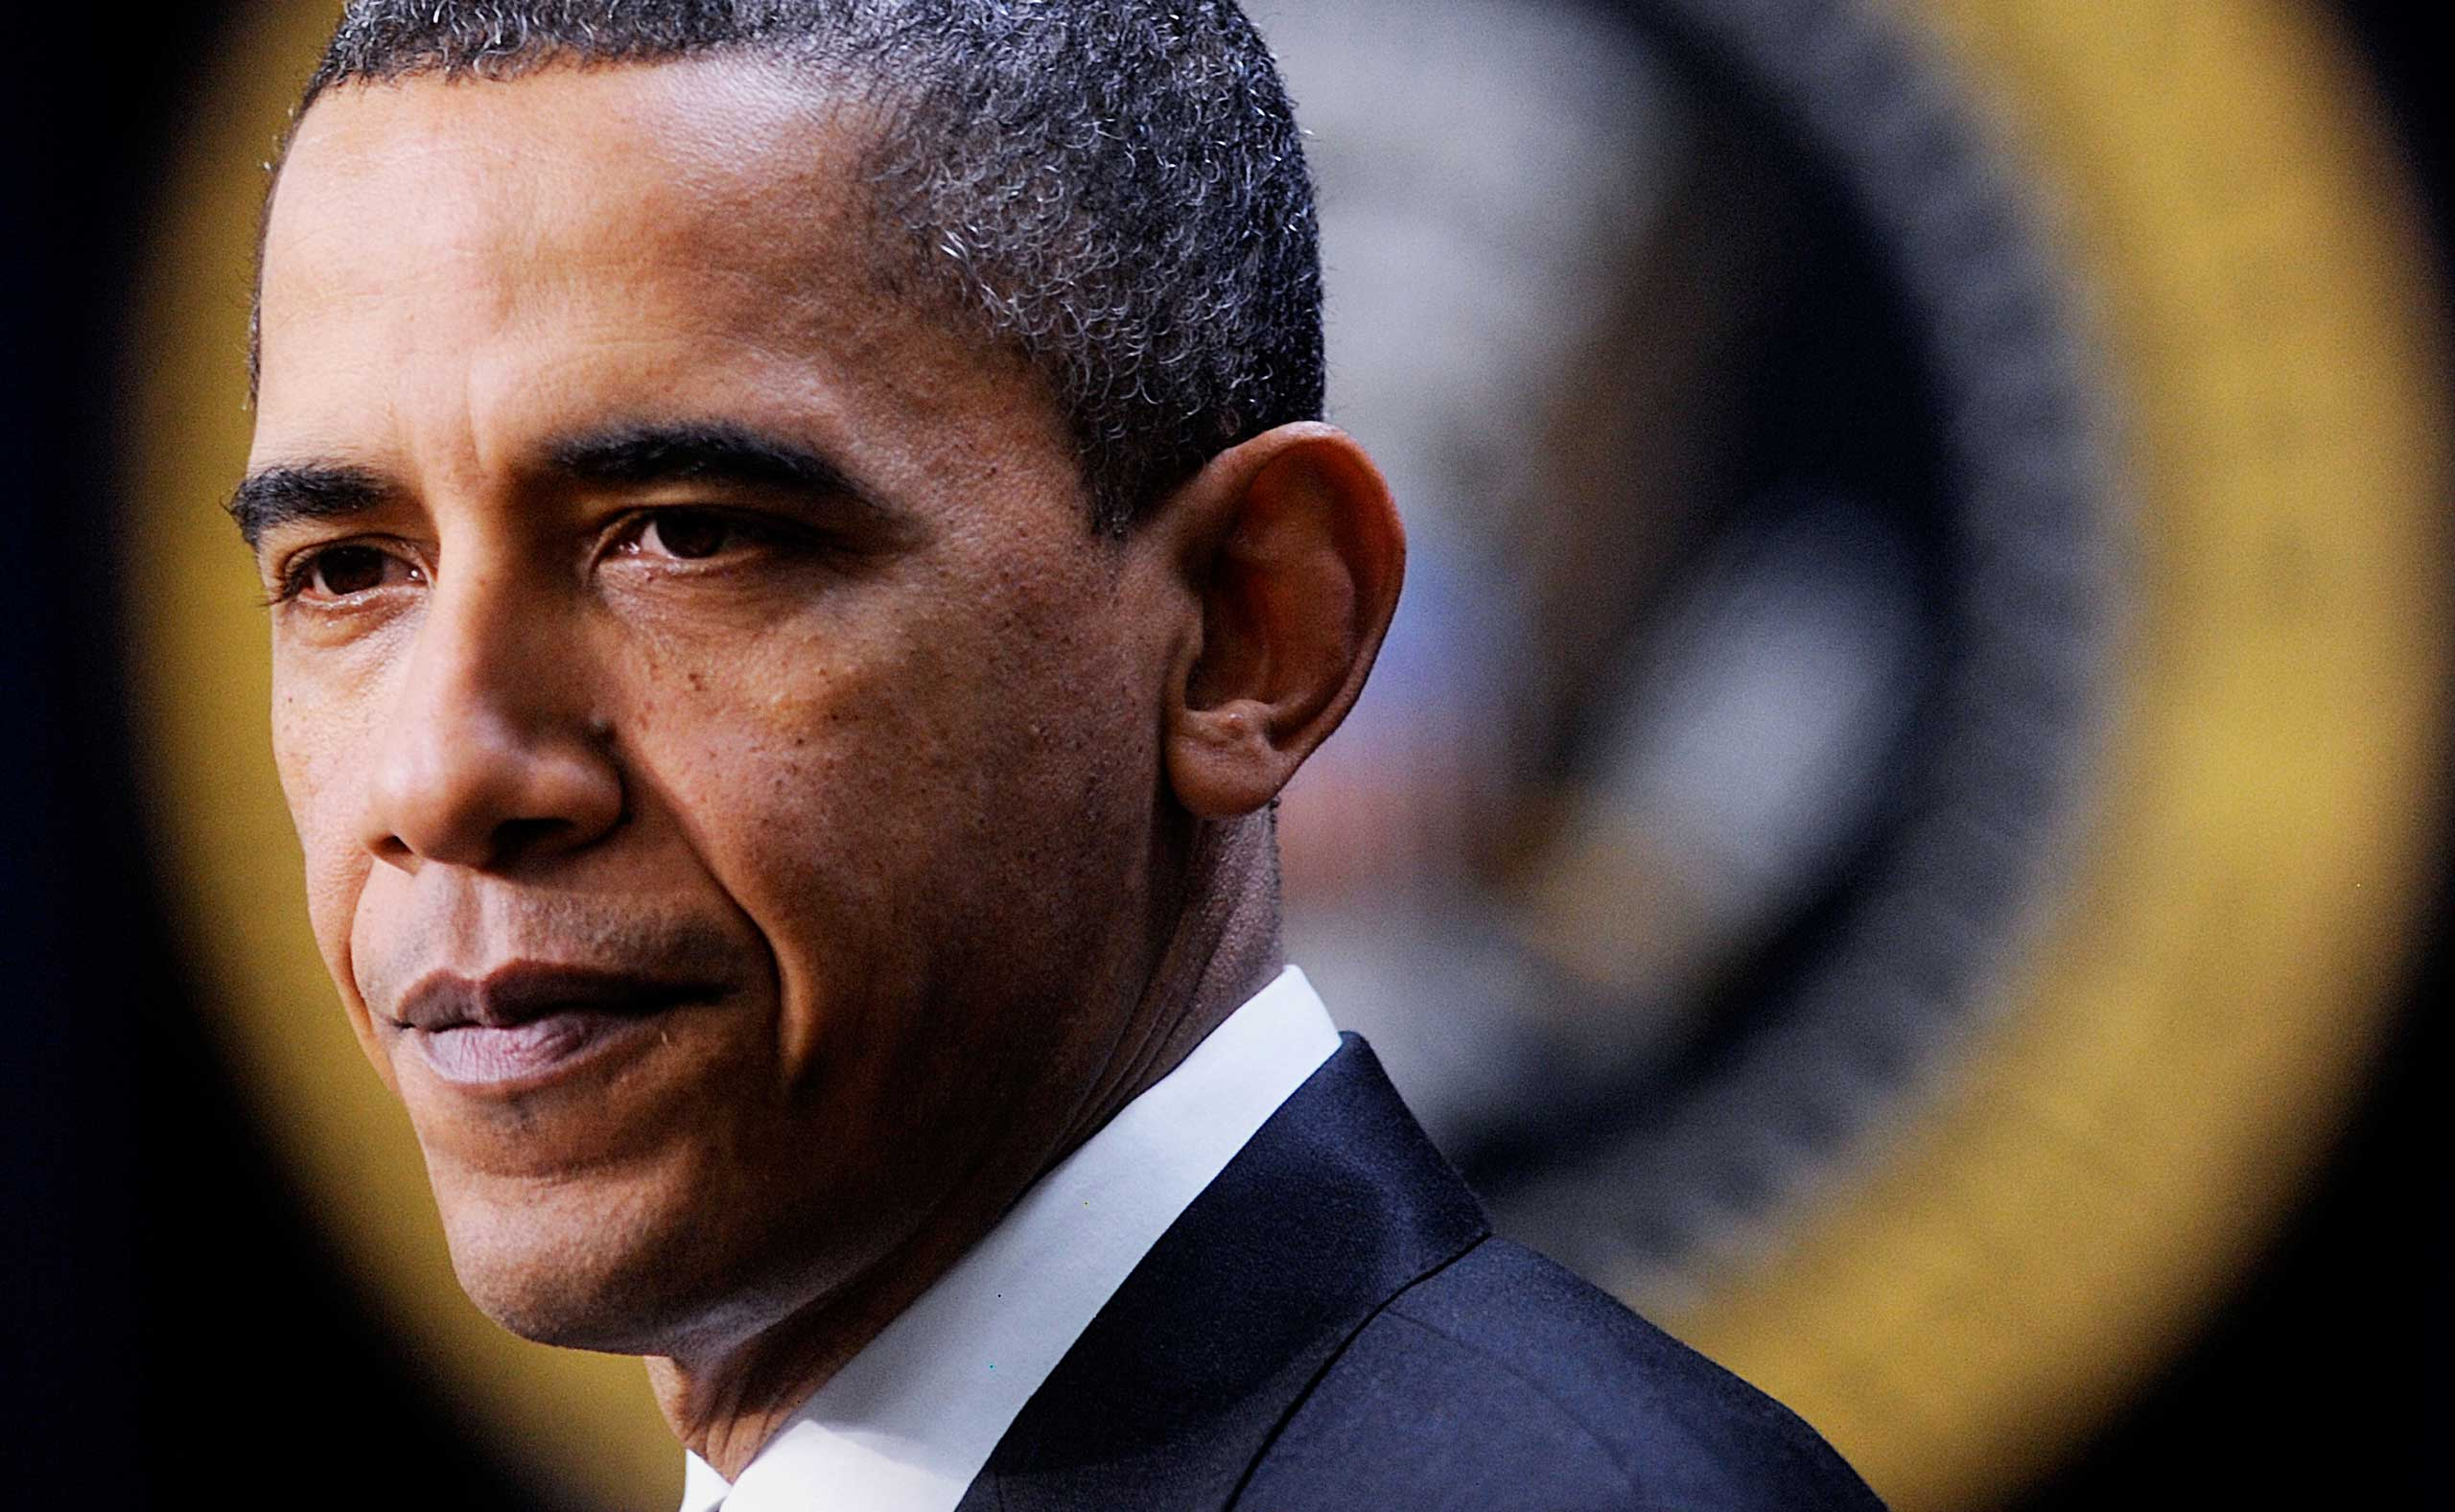 <b>Interstate Recognition of Notarizations, Obama, 2010</b> President Obama used his first veto on a relatively unglamorous bill: the Interstate Recognition of Notarizations Act of 2010. The bill aimed to promote interstate commerce by requiring states to accept notarizations from any state. Obama vetoed the bill because he worried it would facilitate foreclosure fraud.